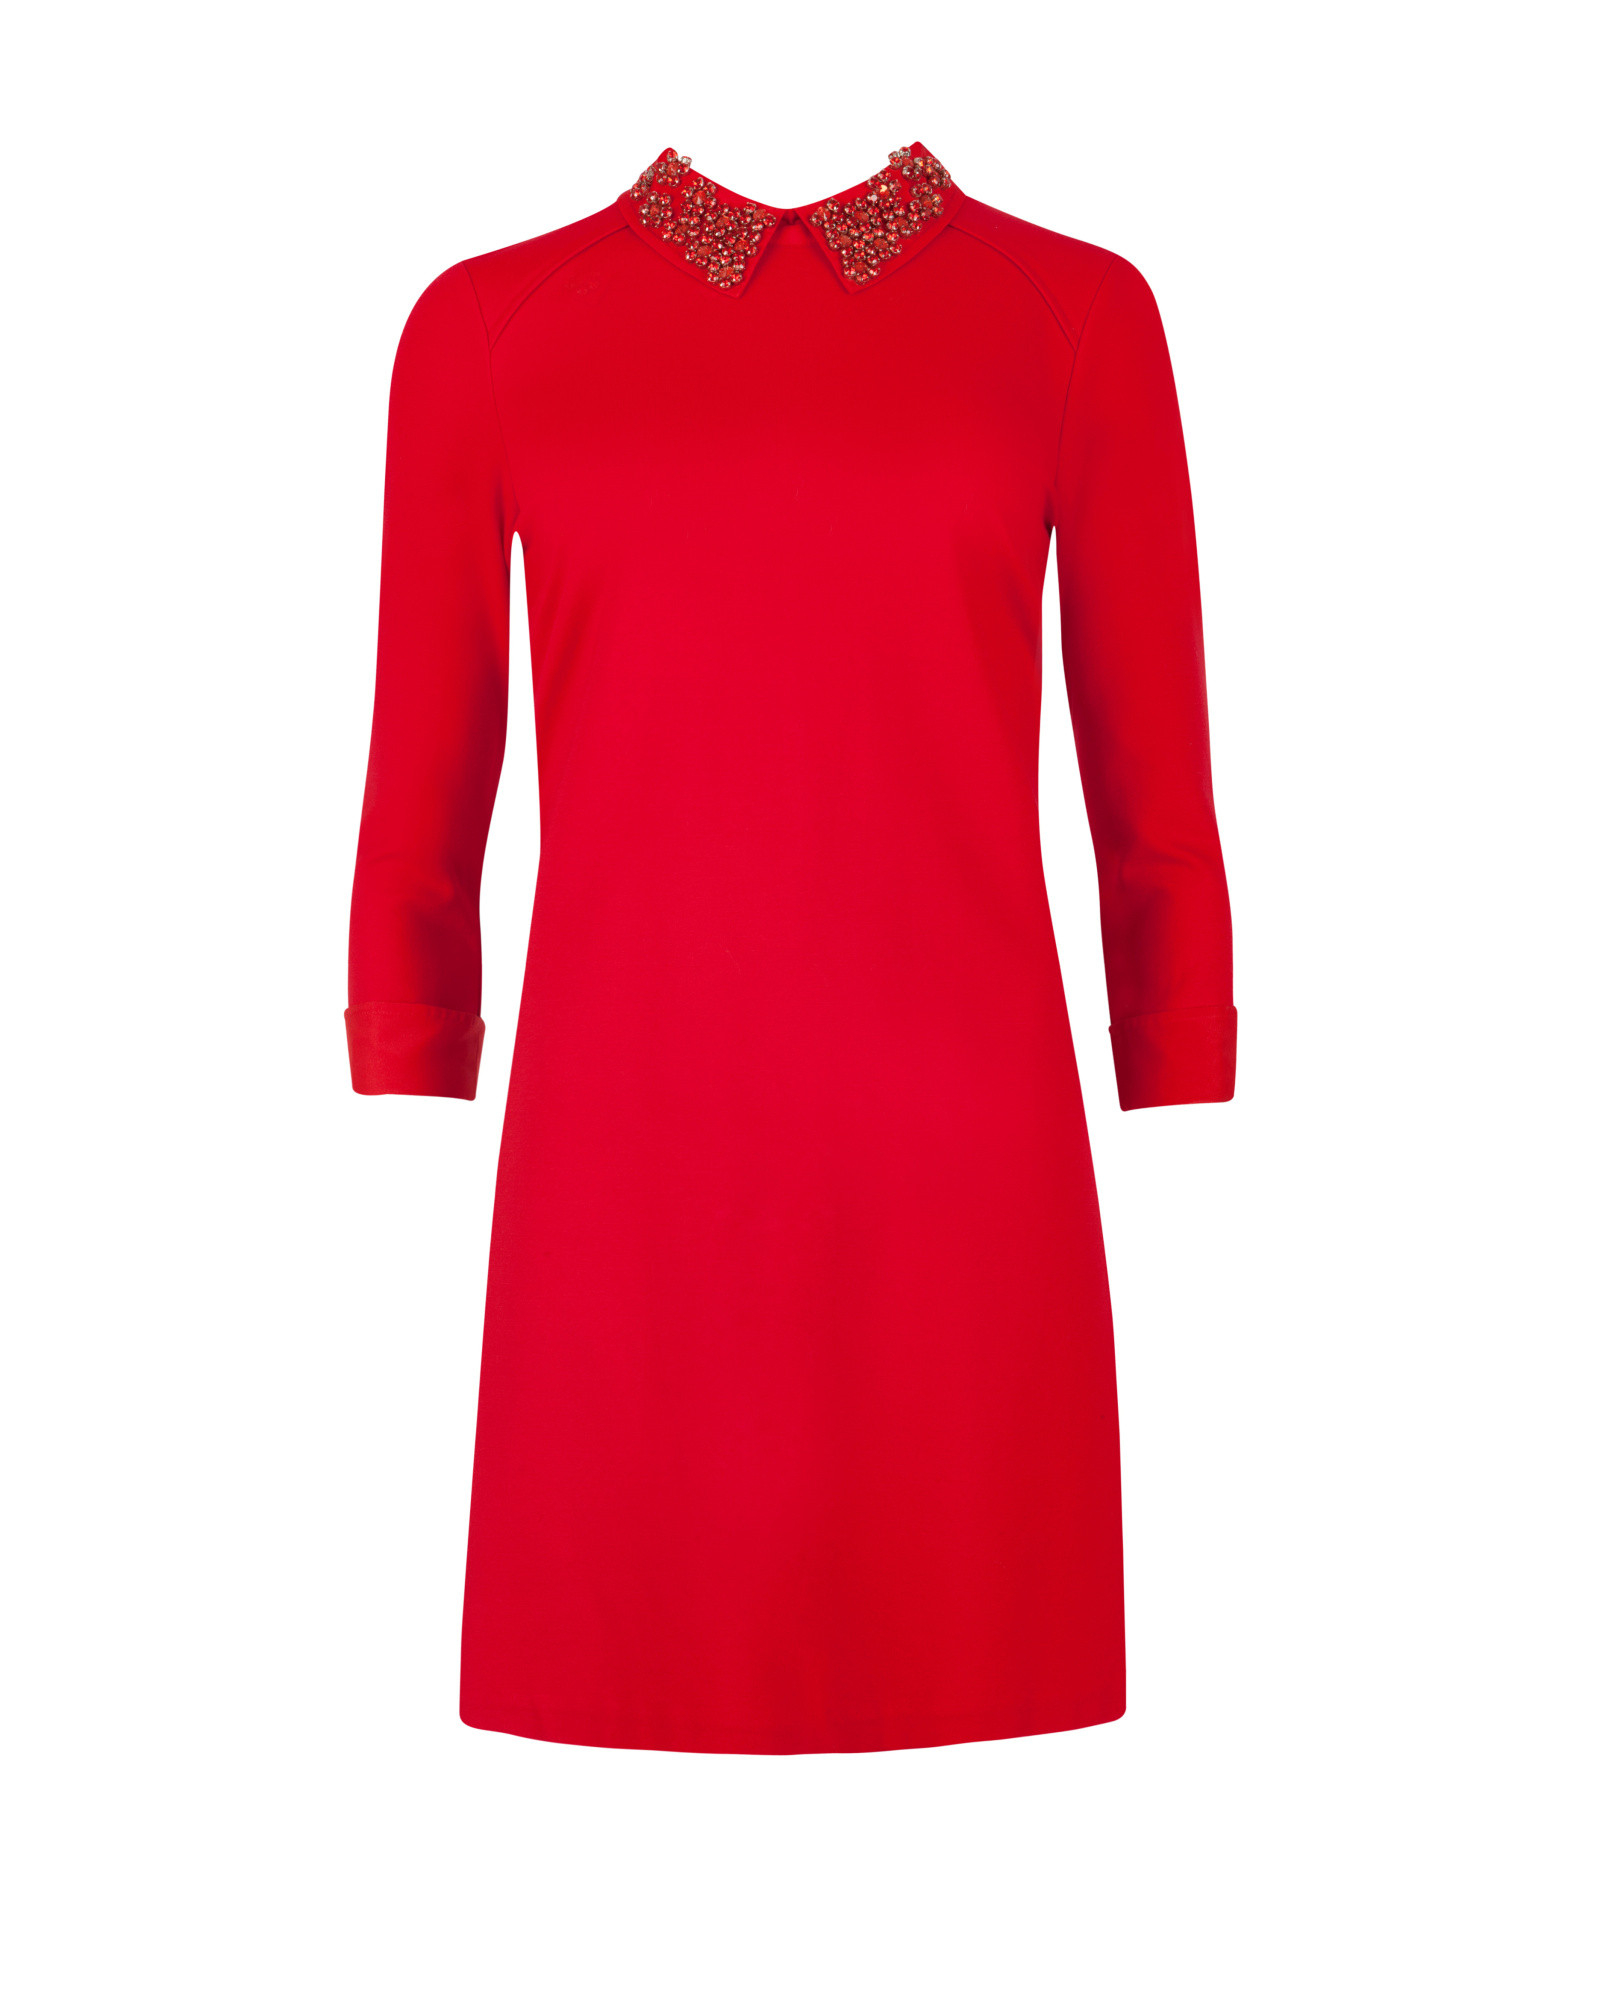 Ted baker Embellished Collar Dress in Red